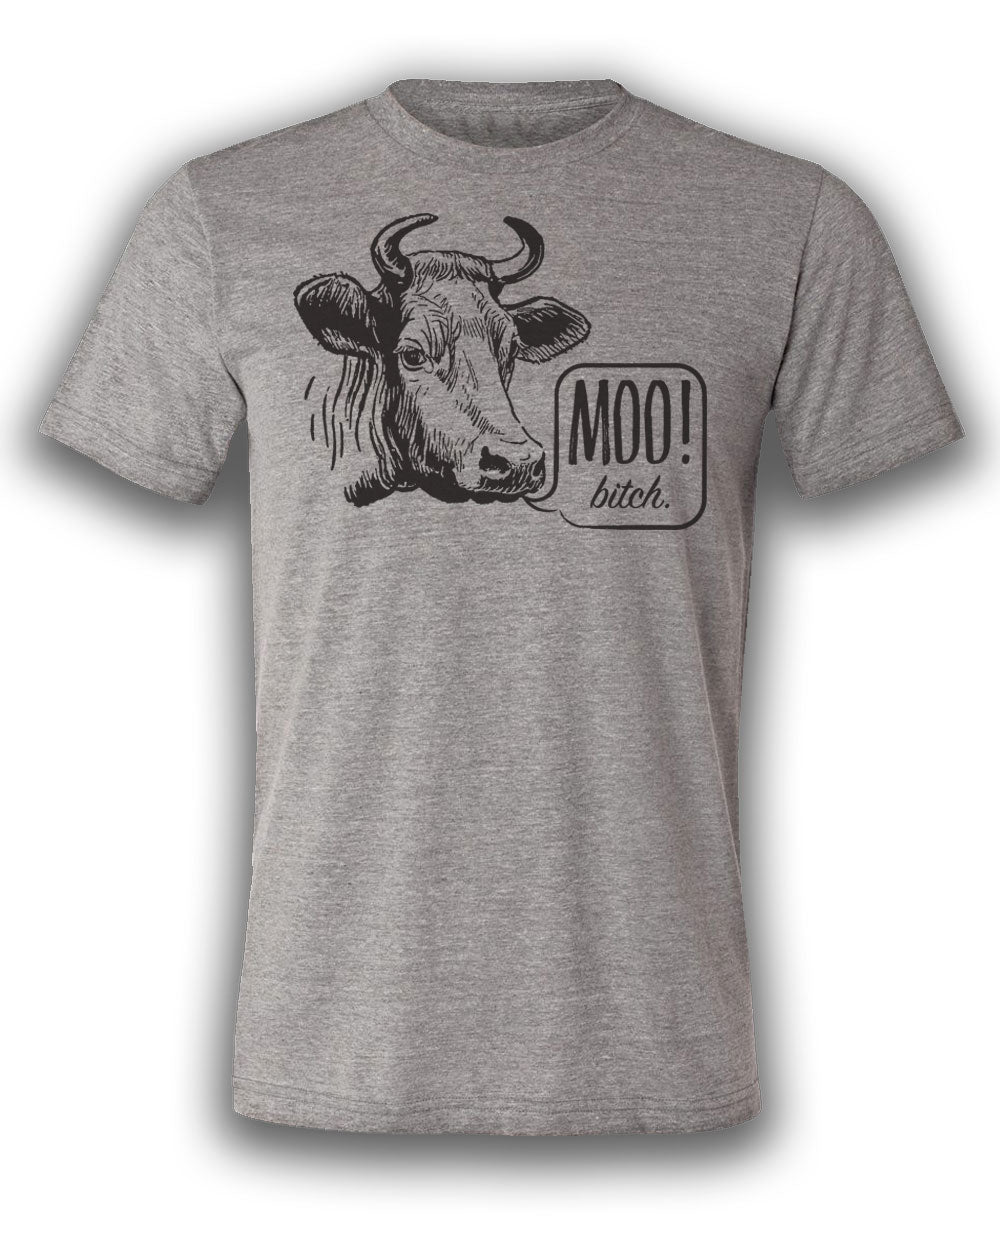 Moo Bitch! T-shirt